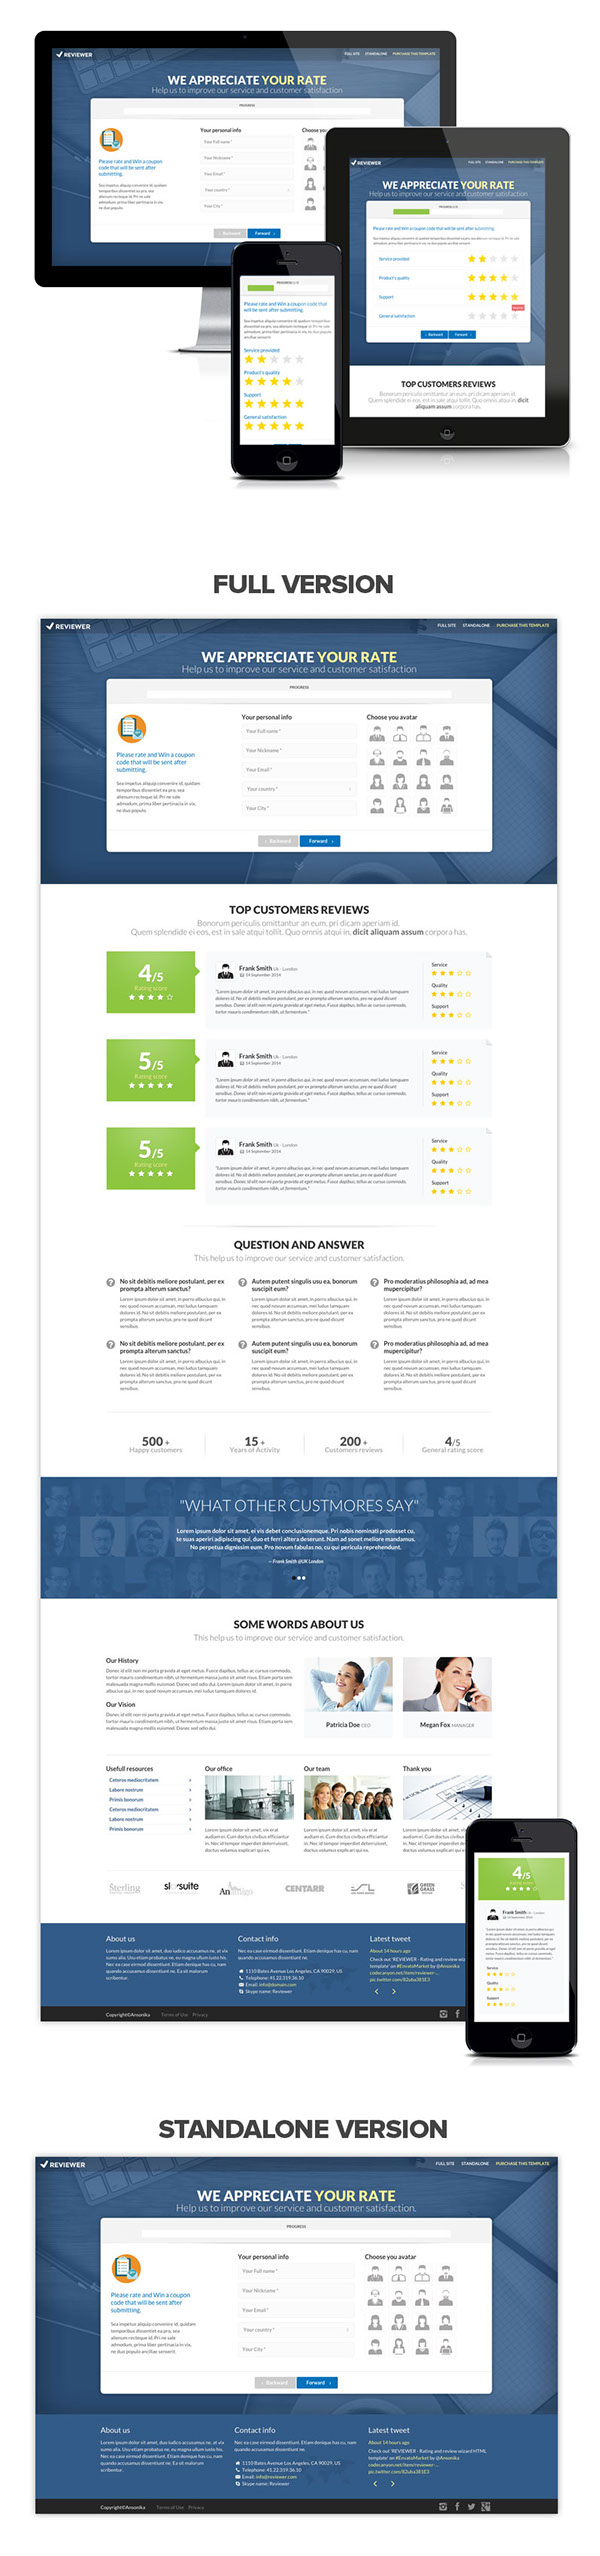 comments form wizard rate rating registration review signup survey wizard site template Website